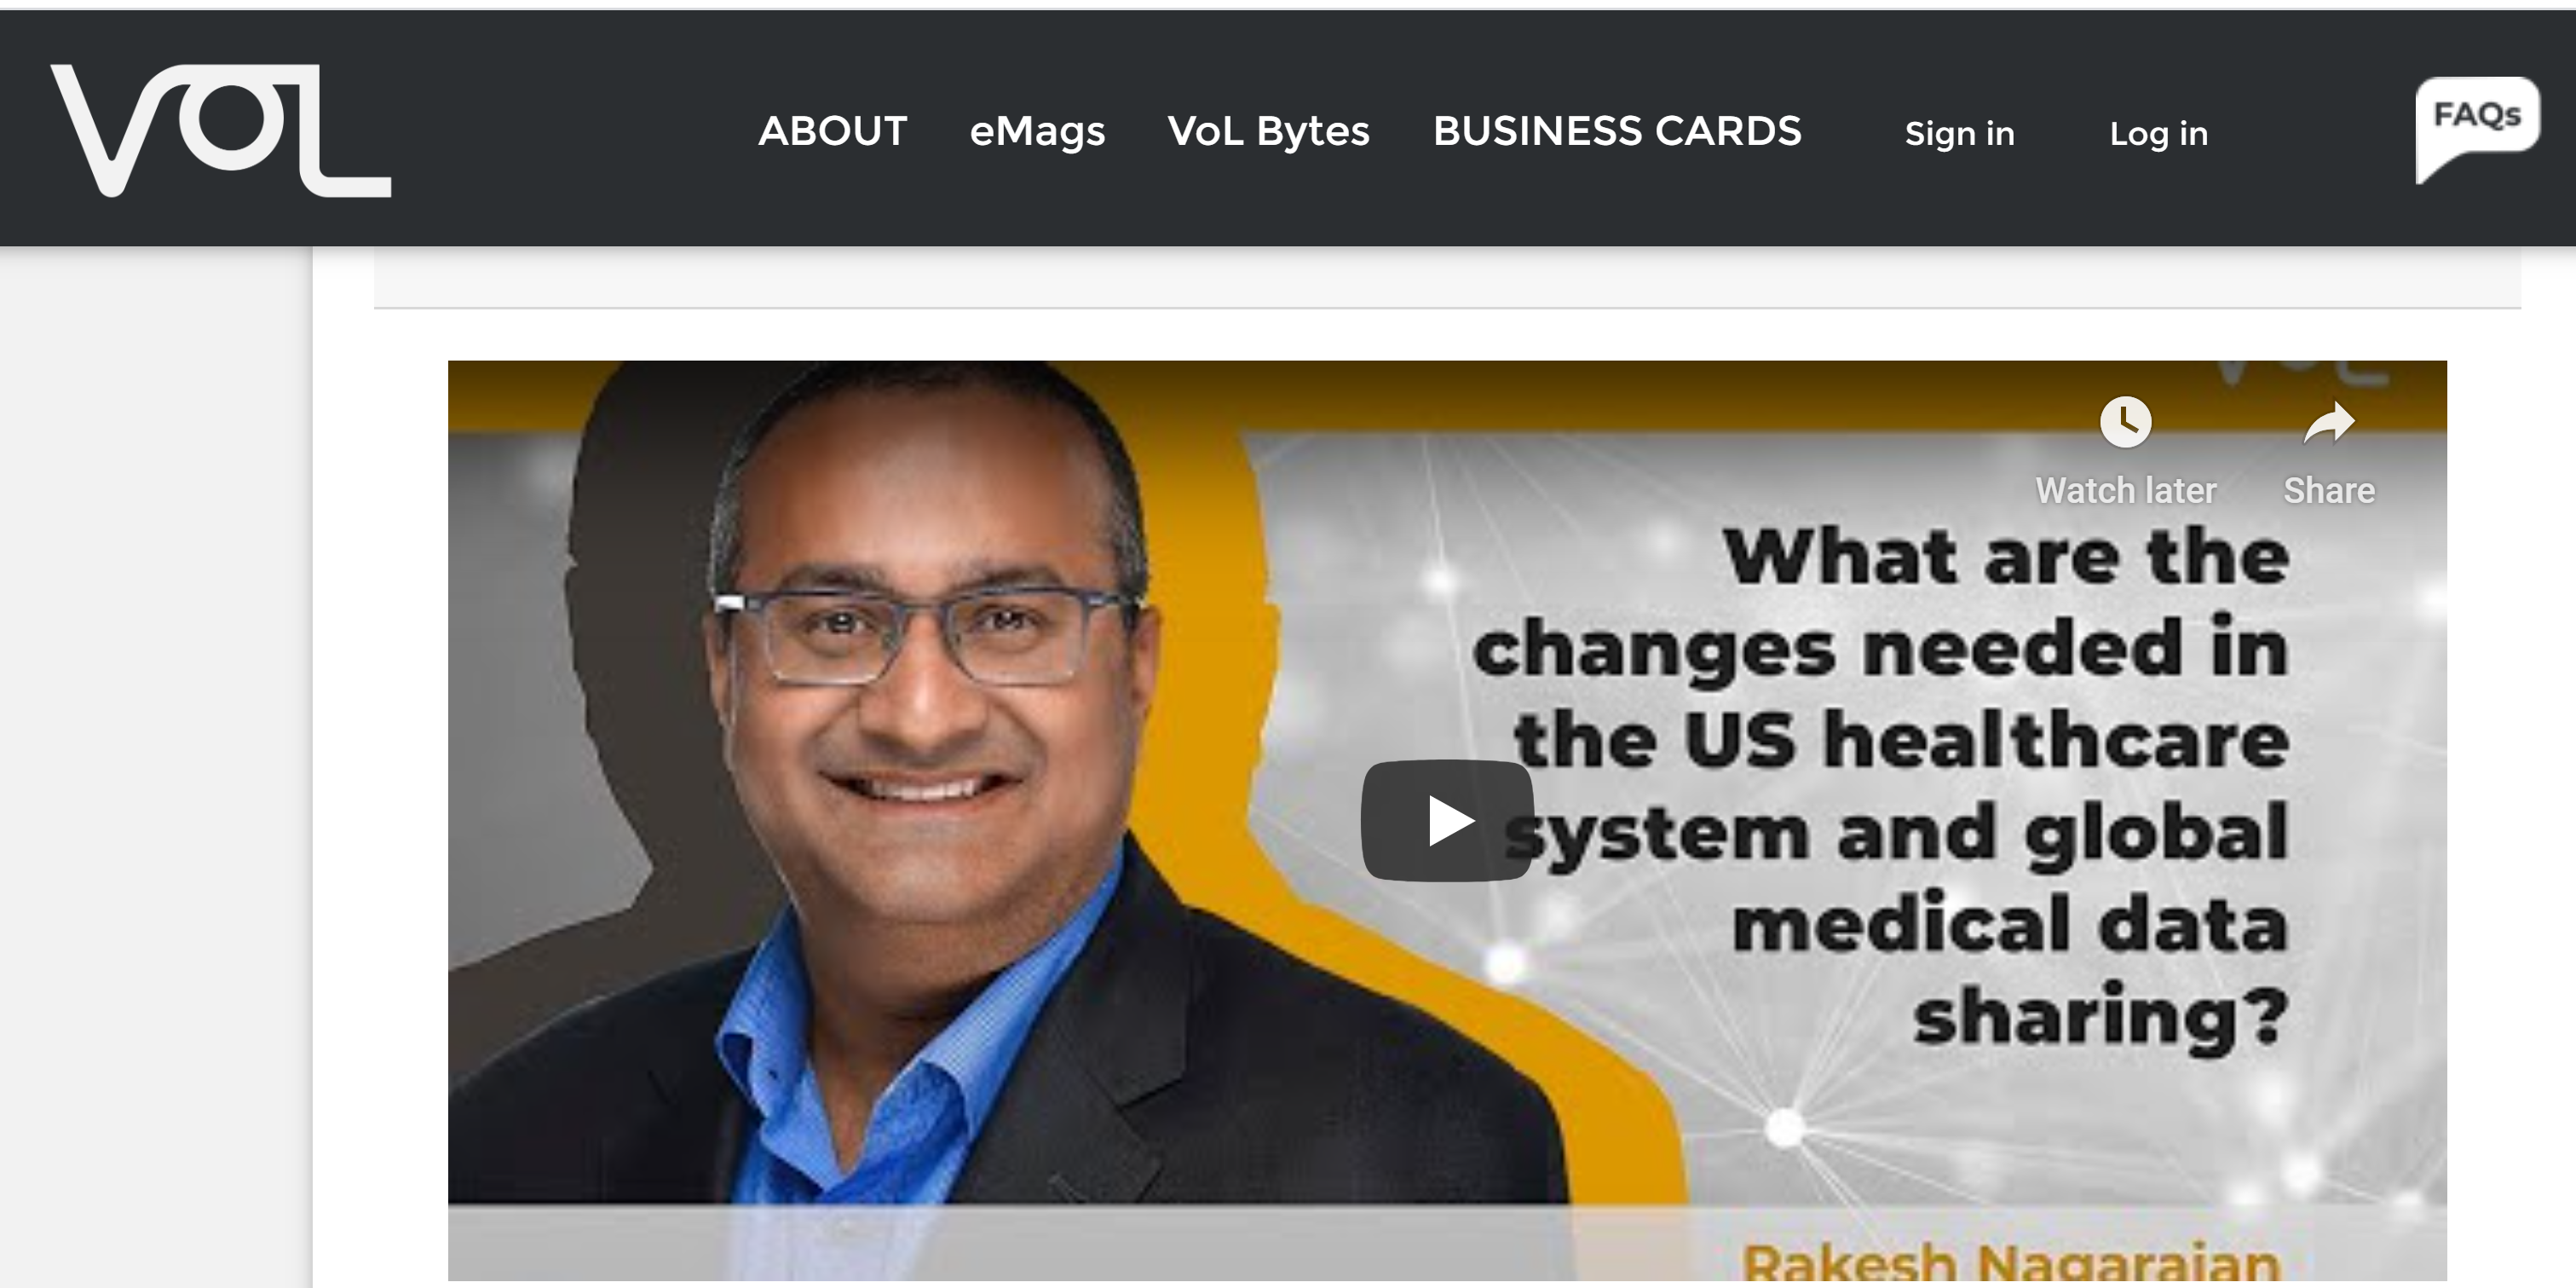 Voices of Leaders Interview with Rakesh Nagarajan